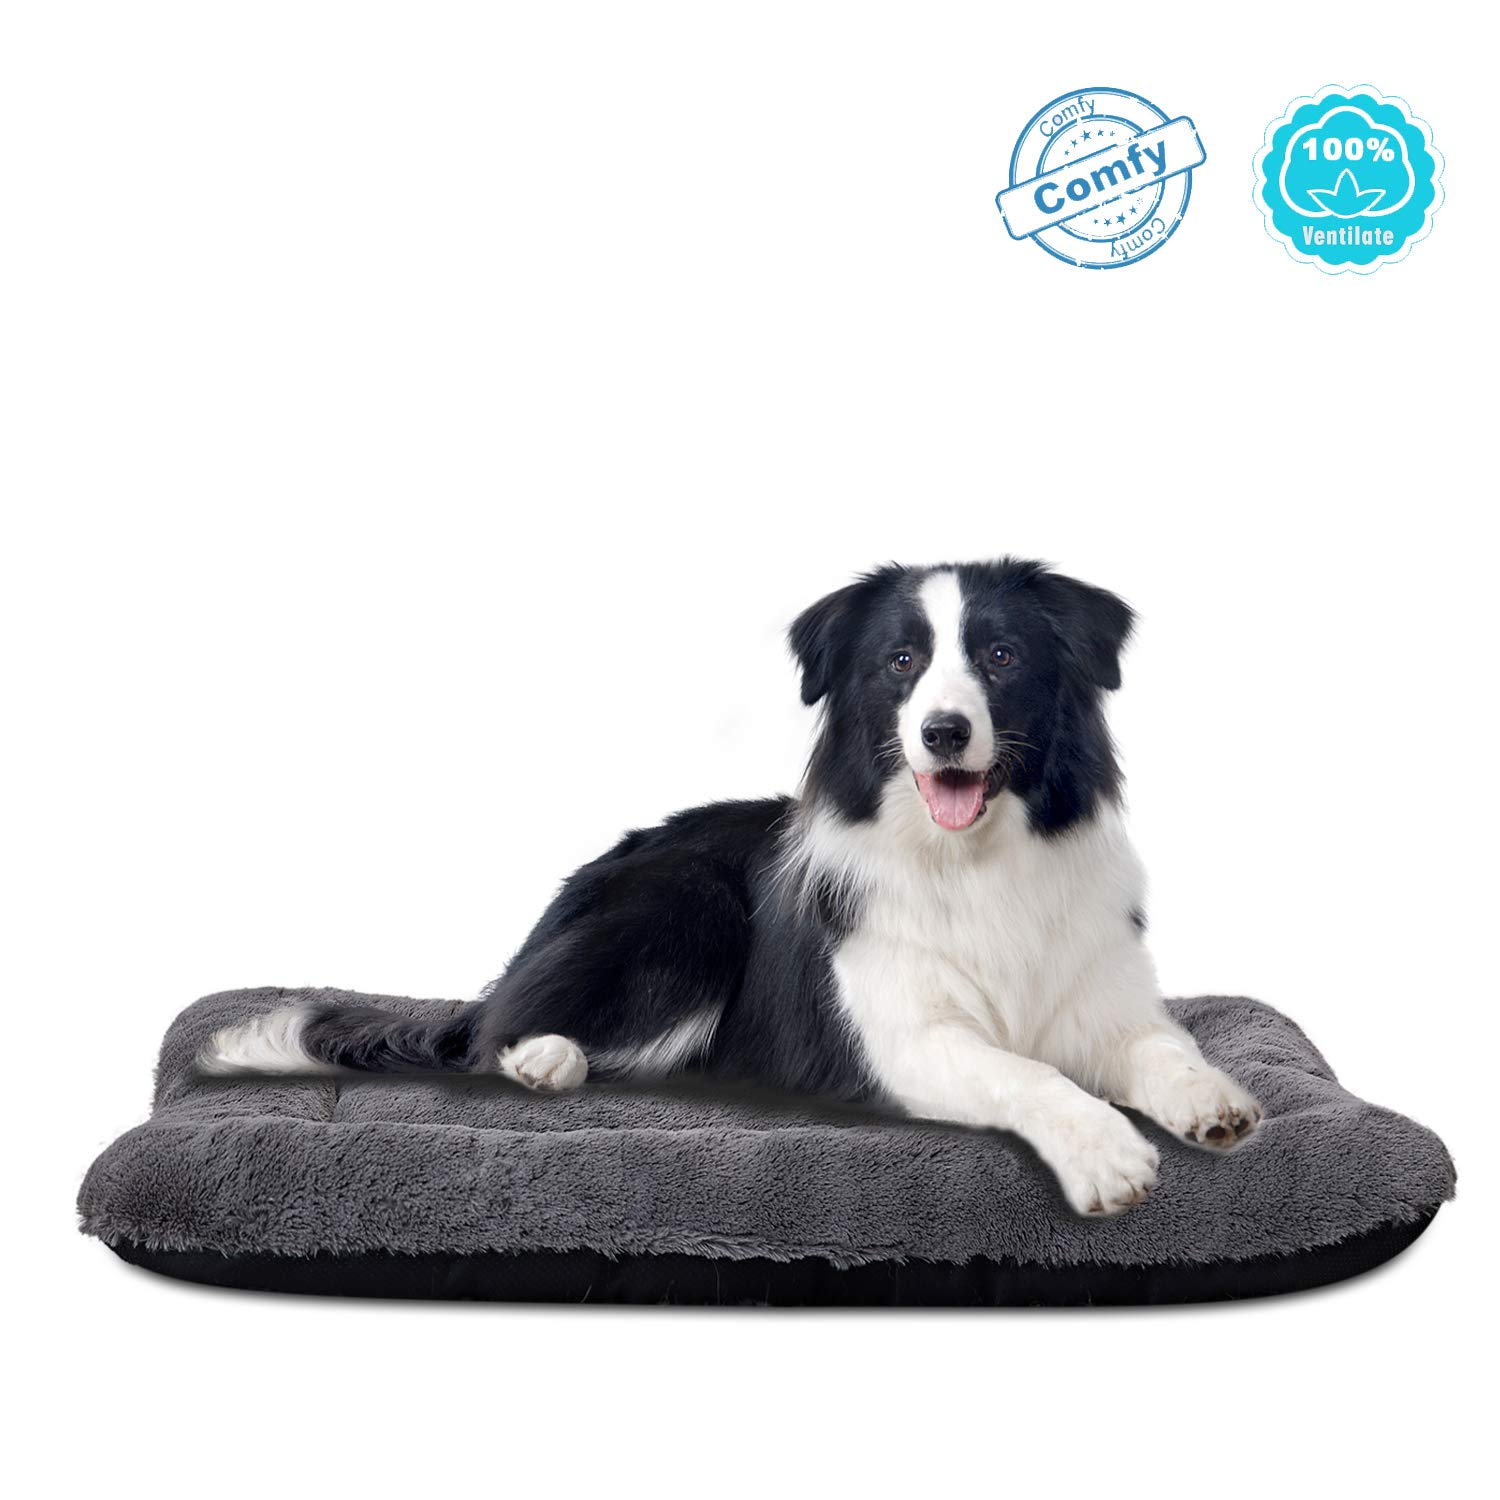 ANWA Dog Bed Large Size Dogs, Washable Dog Crate Bed Cushion, Dog Crate Pad Large Dogs 36 INCH by ANWA